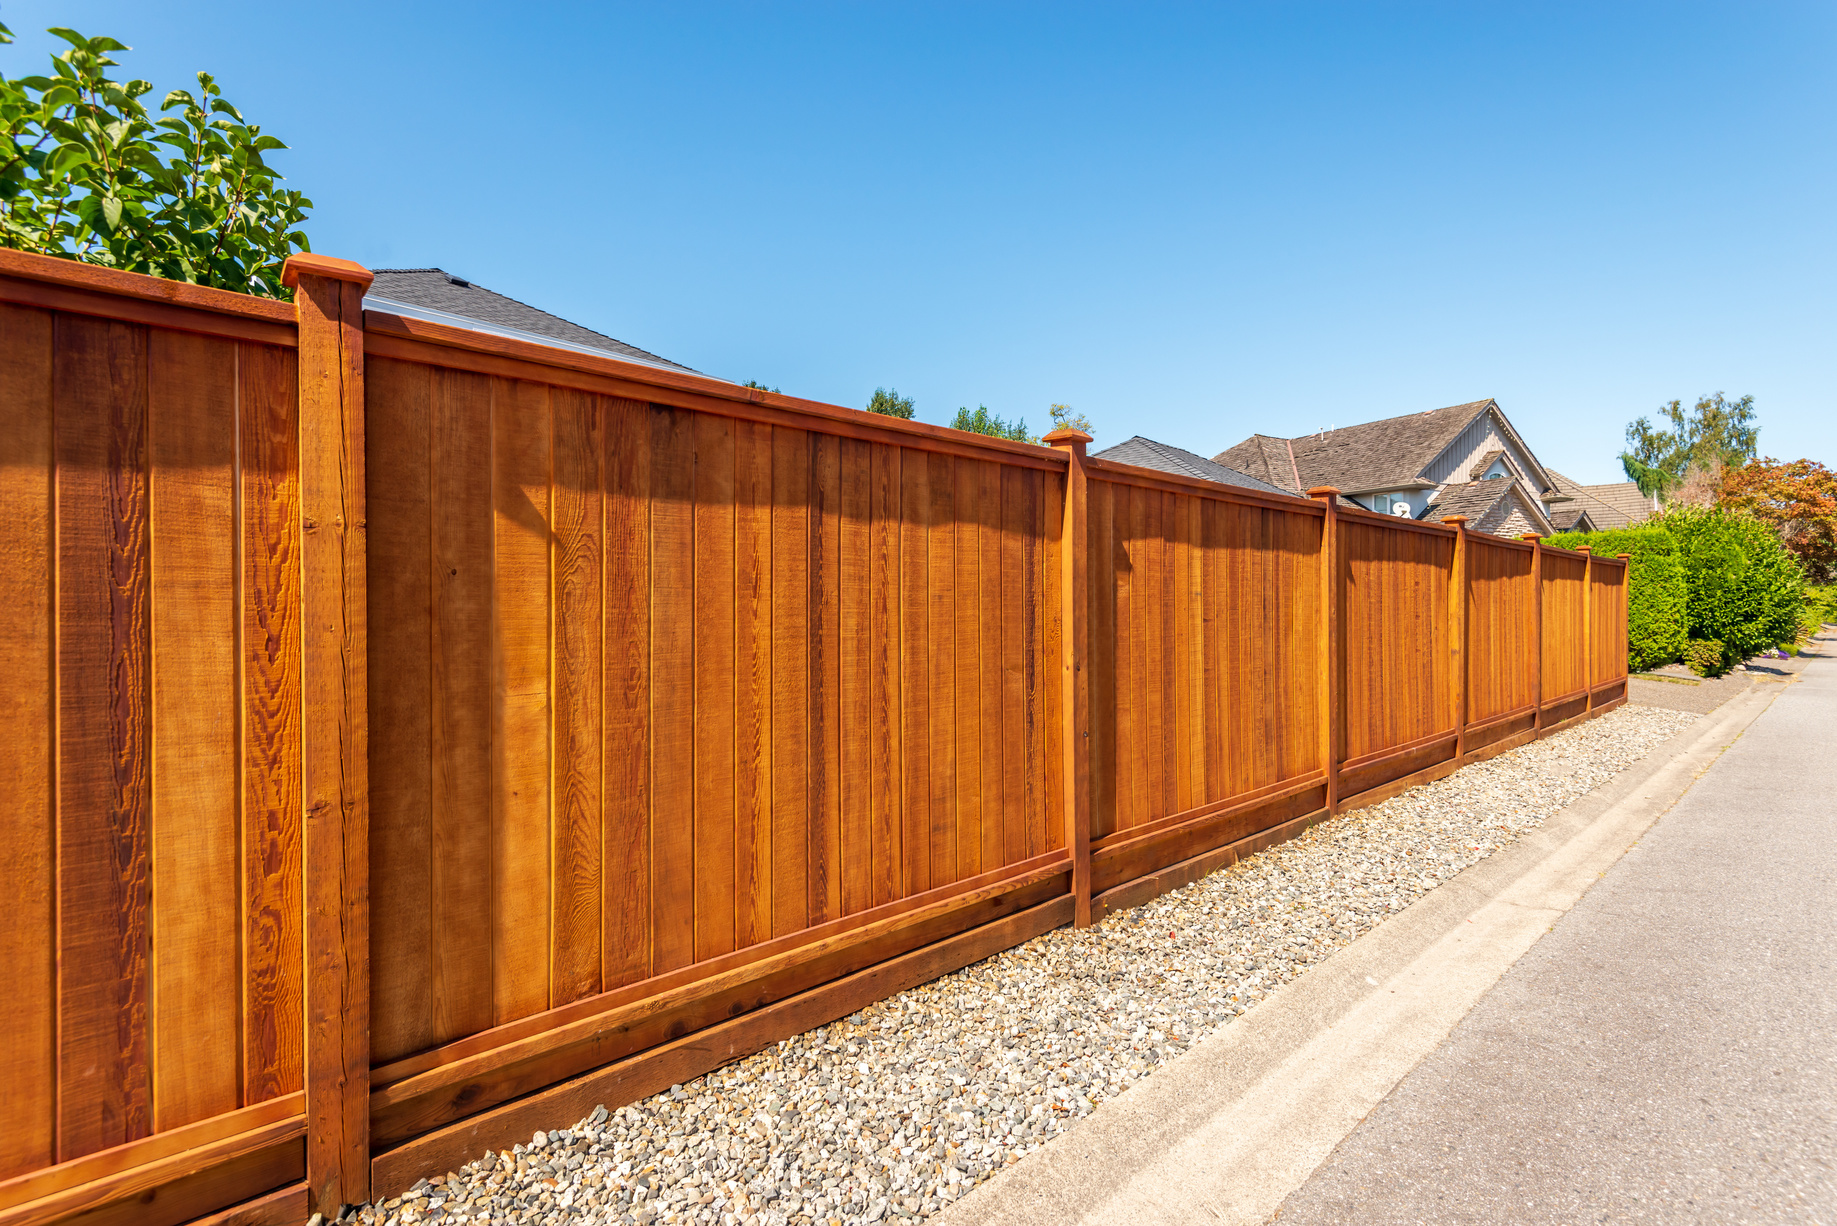 wood fence on the side of the road